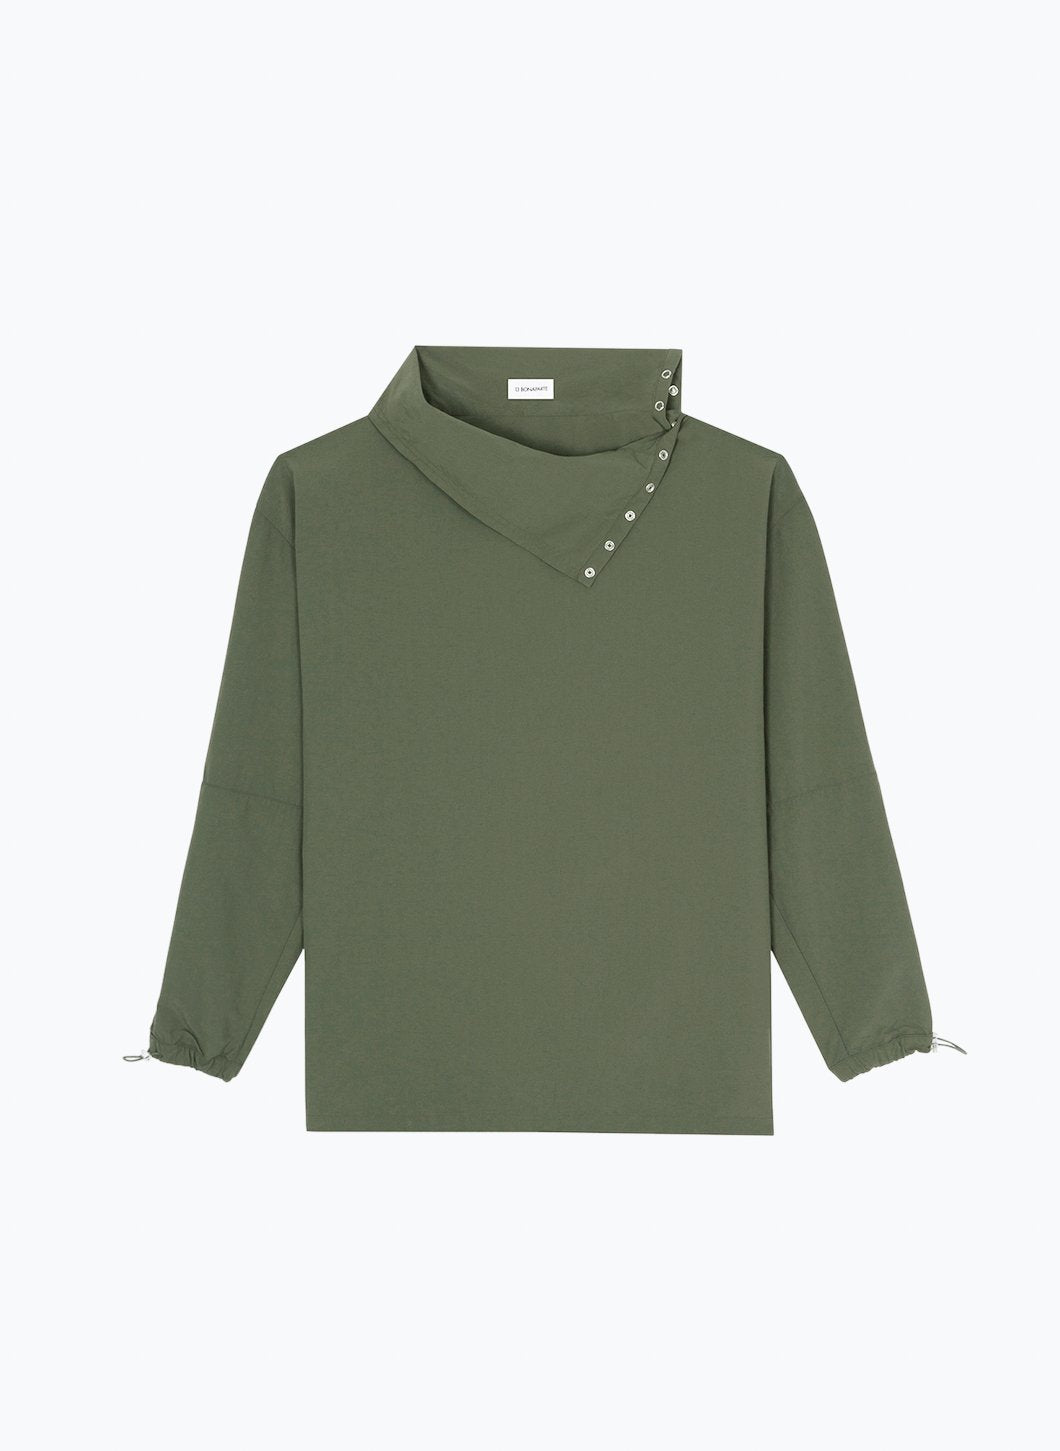 High Funnel Neck Sweatshirt with Side Buttons in Olive Technical Fabric